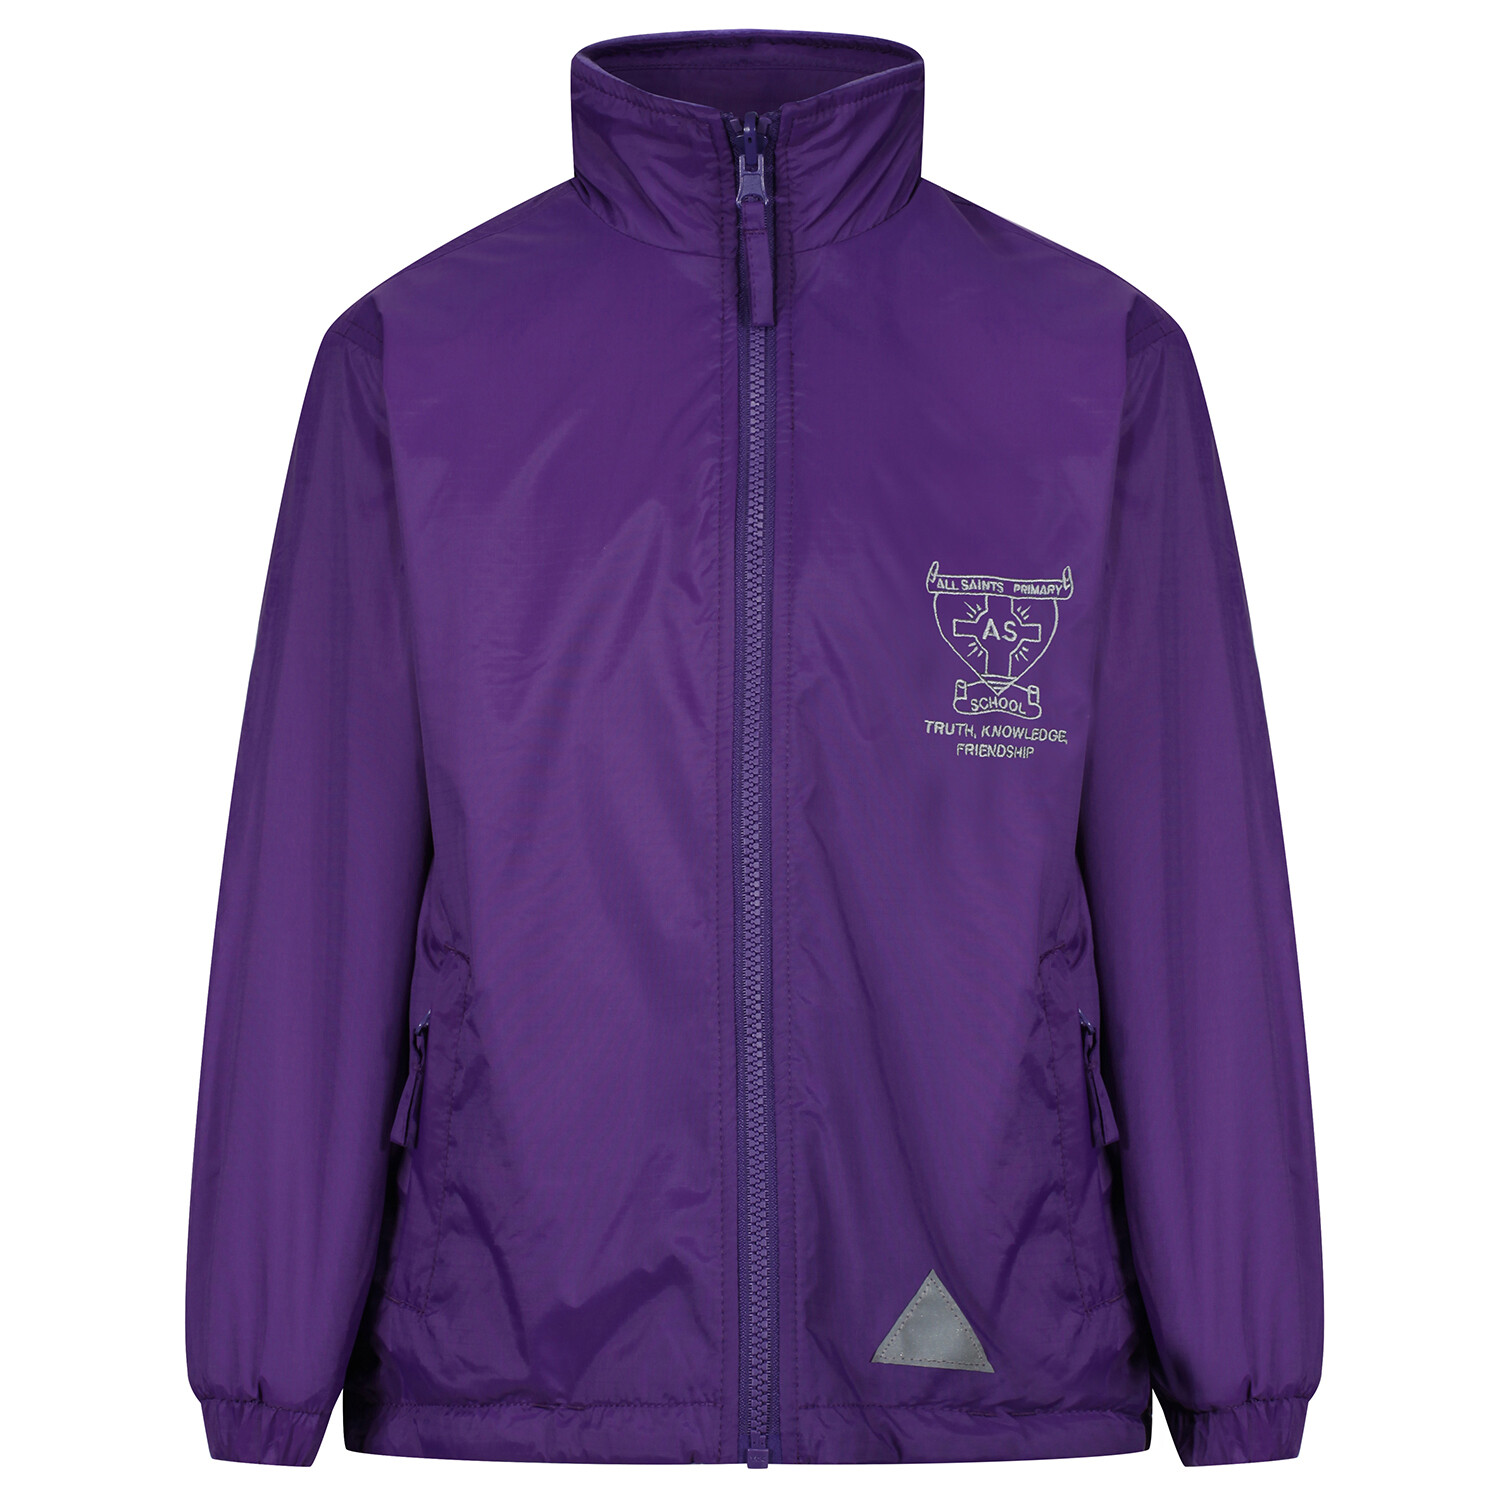 All Saints Primary 'Lightweight' Rain Jacket (Fleece lined)